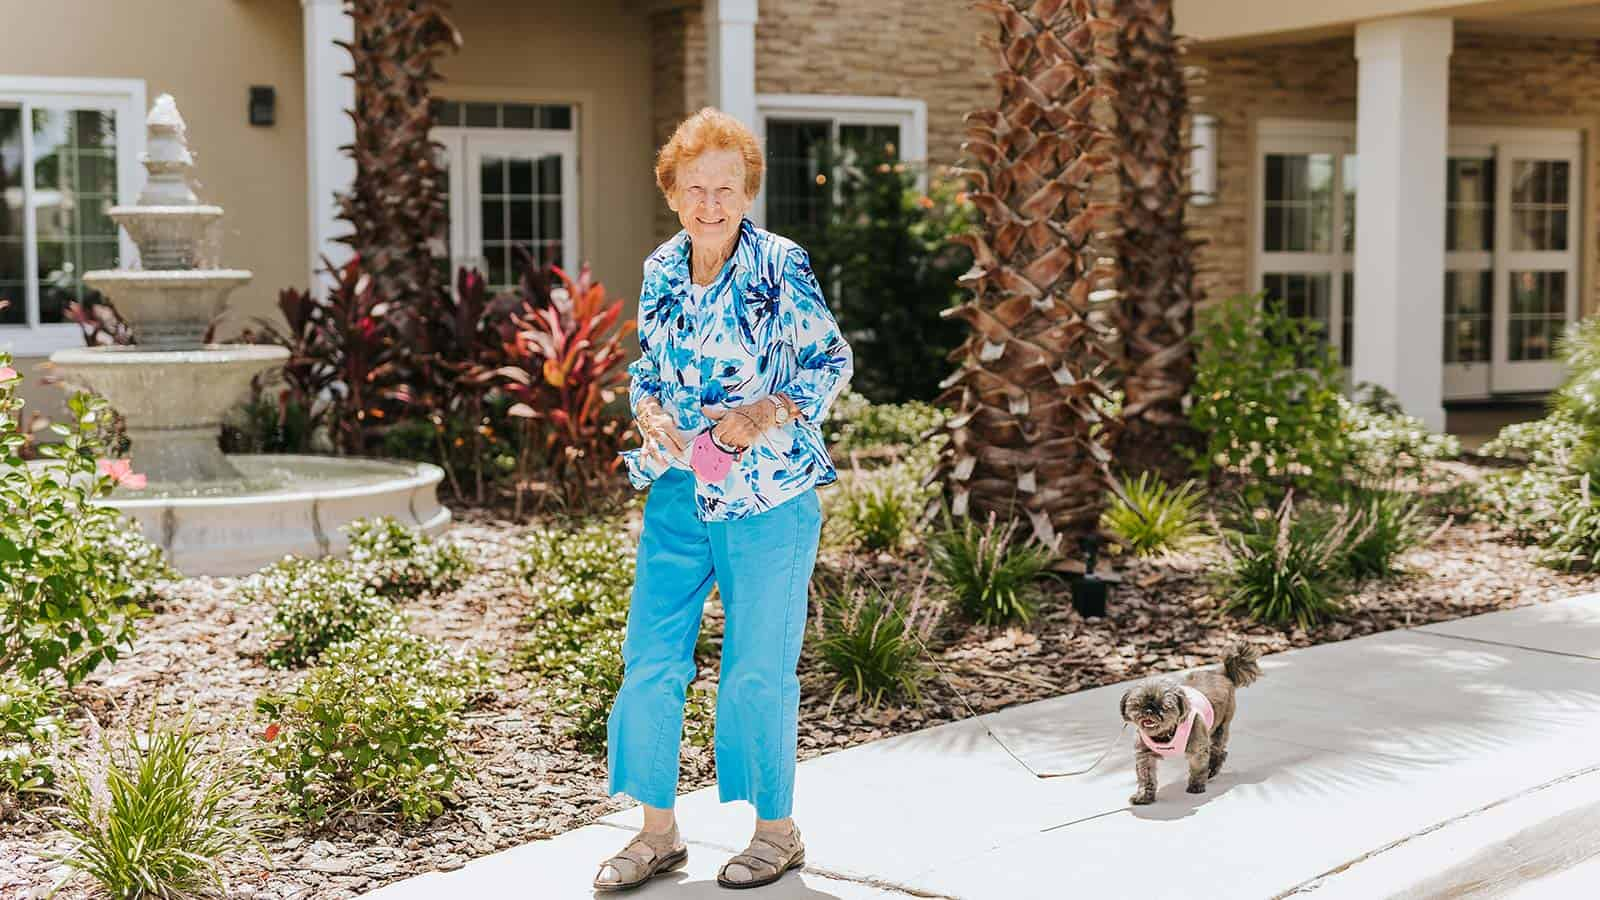 What To Consider When Searching For A Senior Living Community